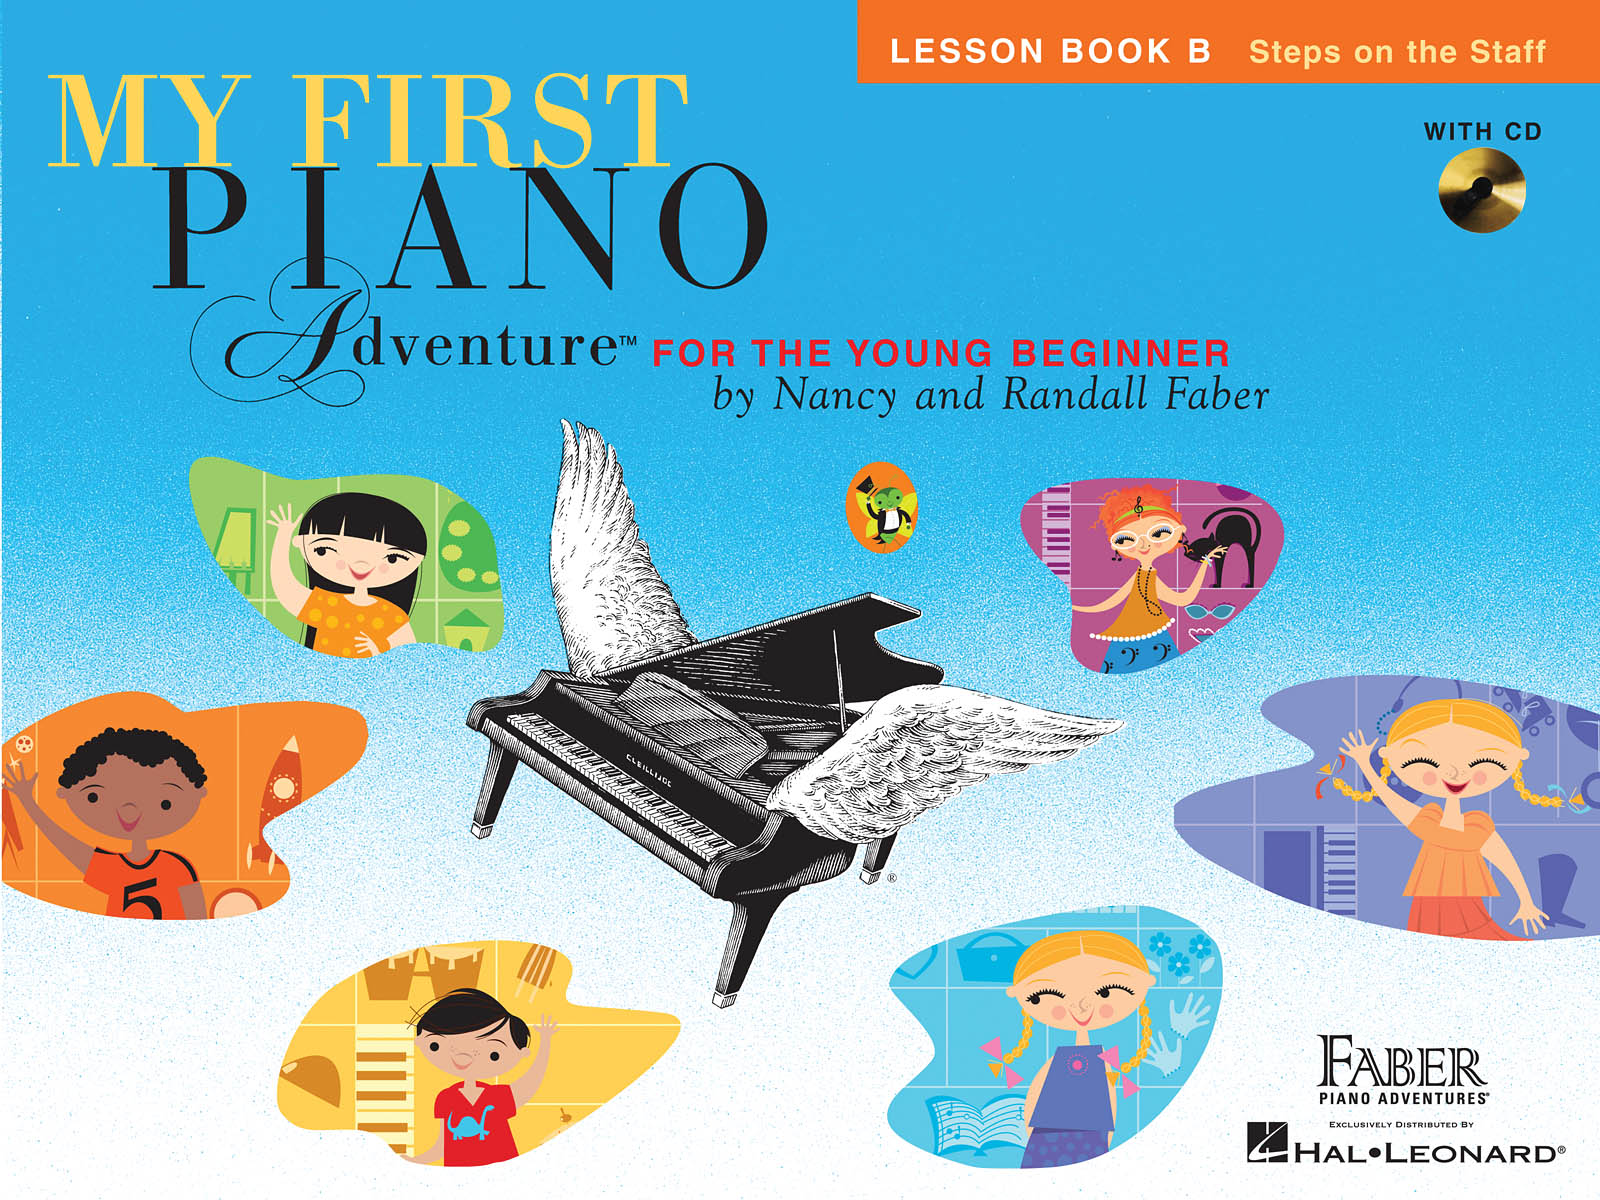 My First Piano Adventure Lesson Book B, Steps on the Staff